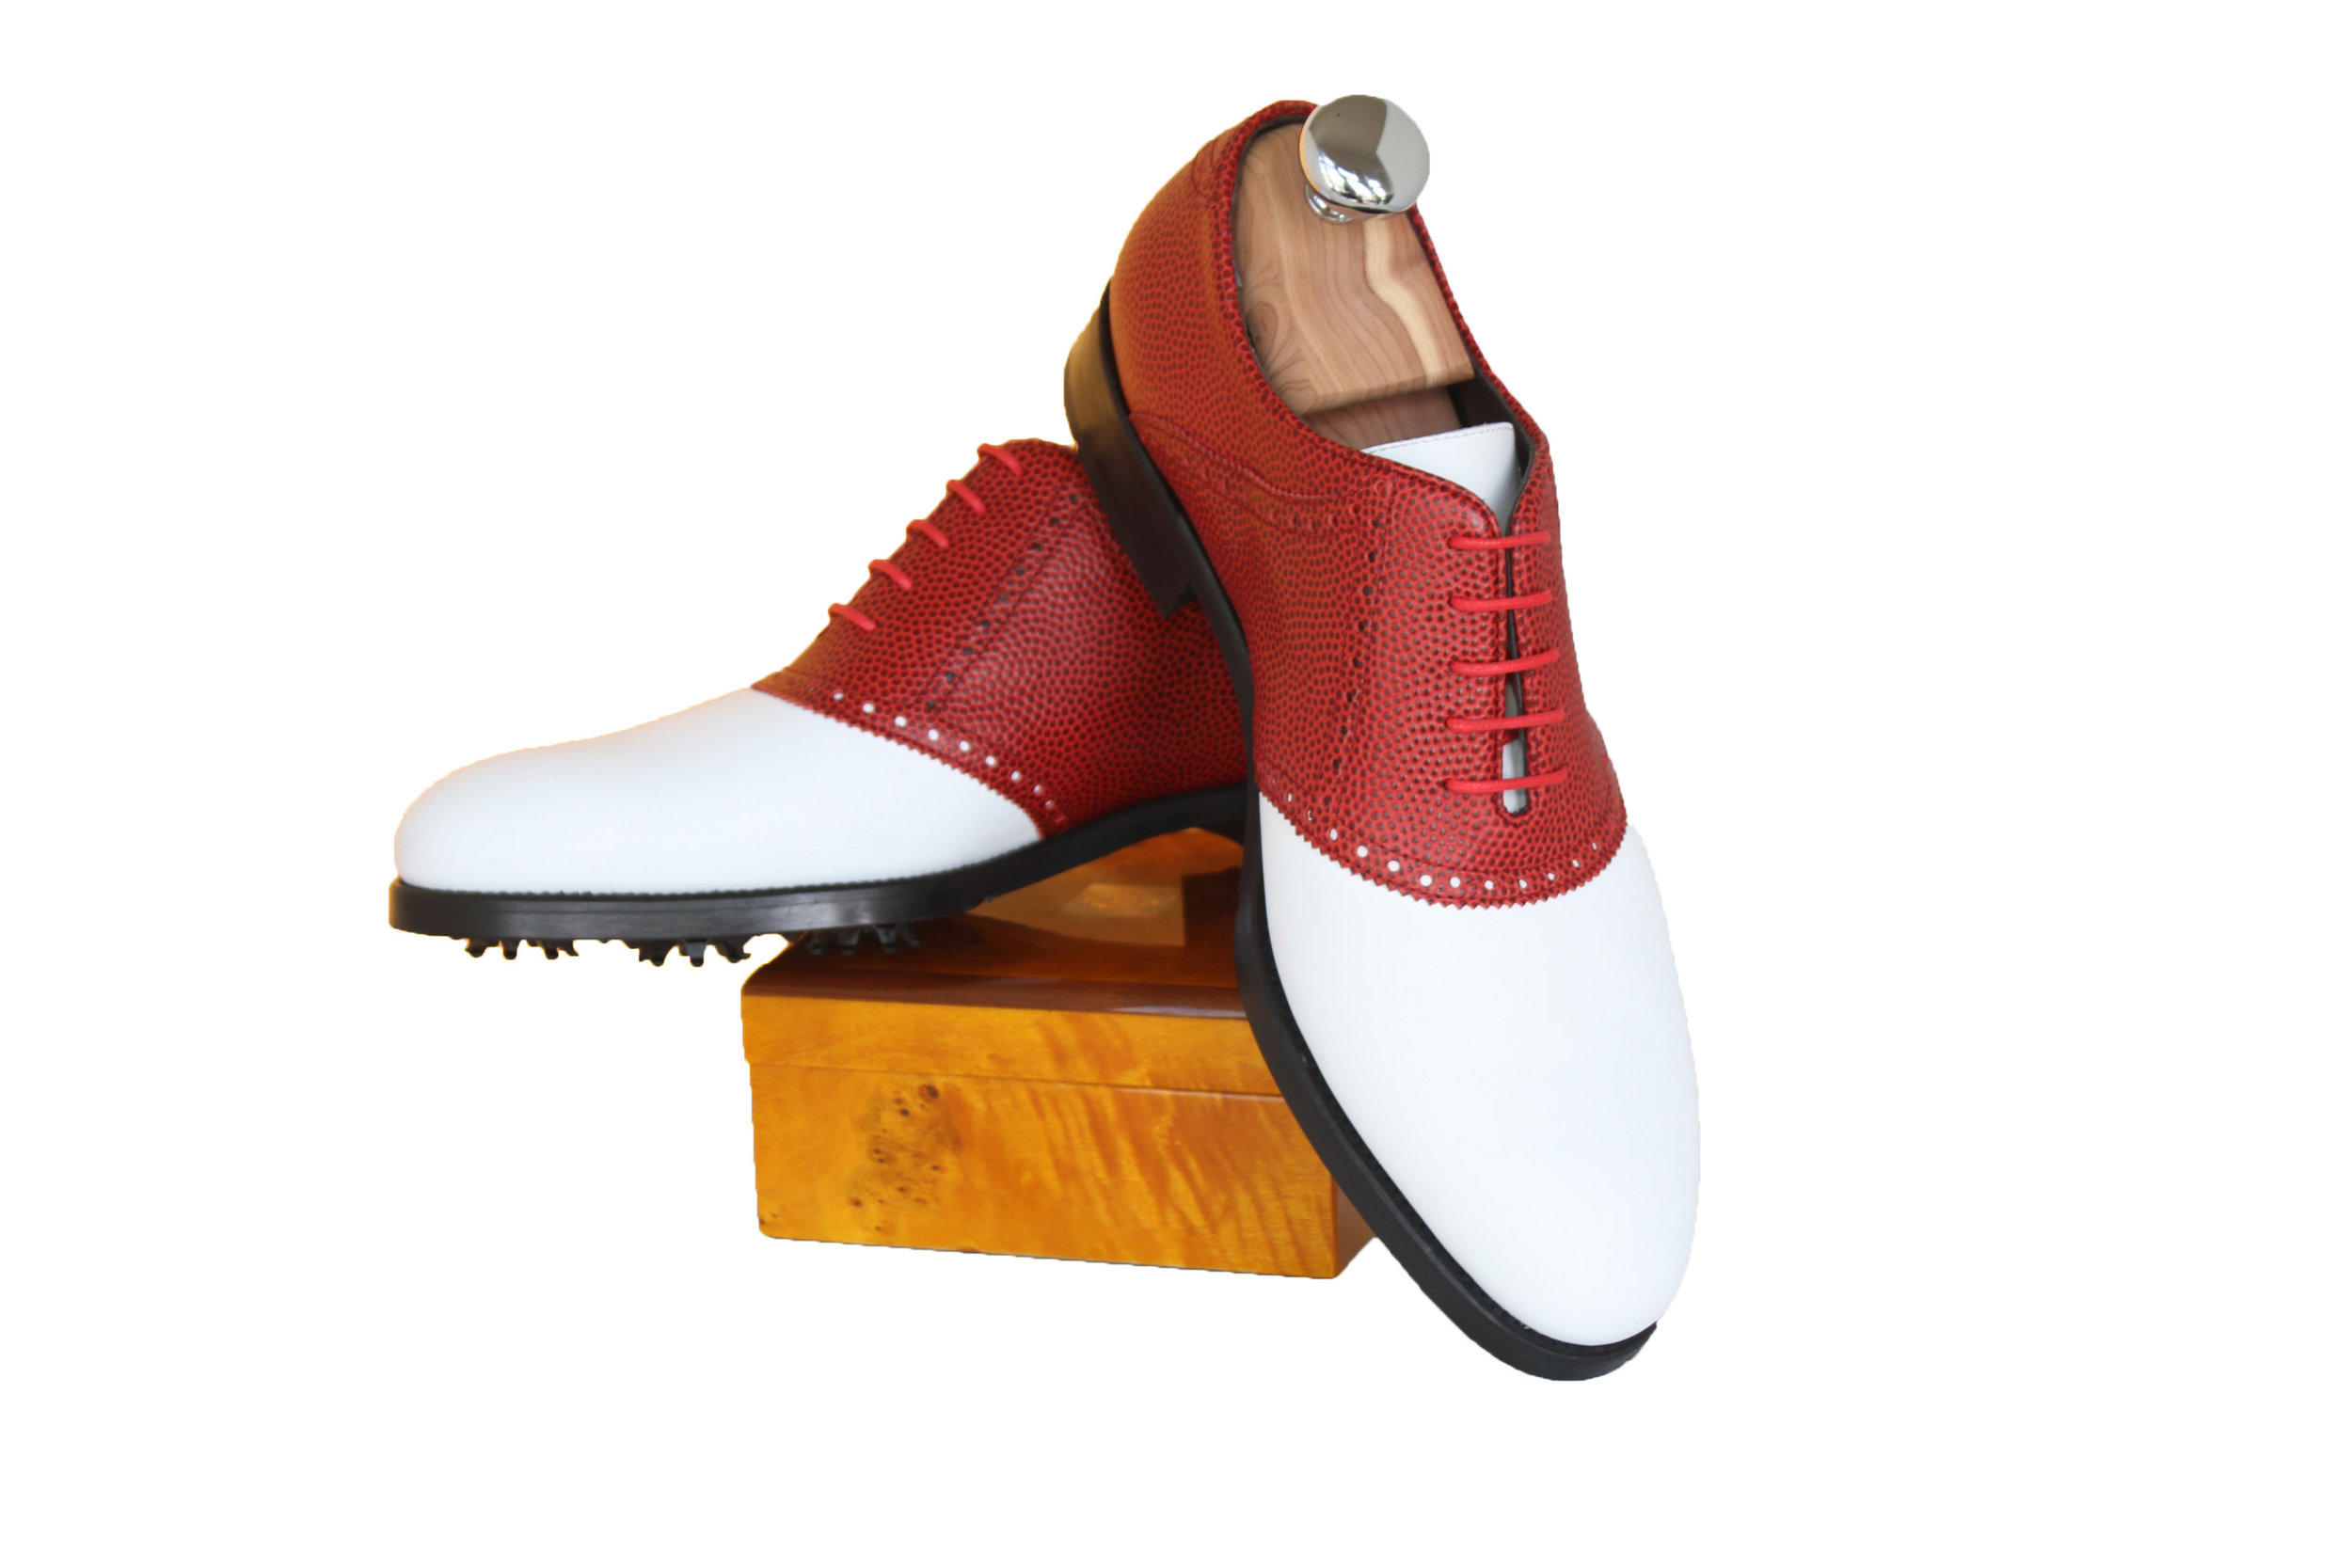 06 - RED AND WHITE GOLF SHOE.jpg